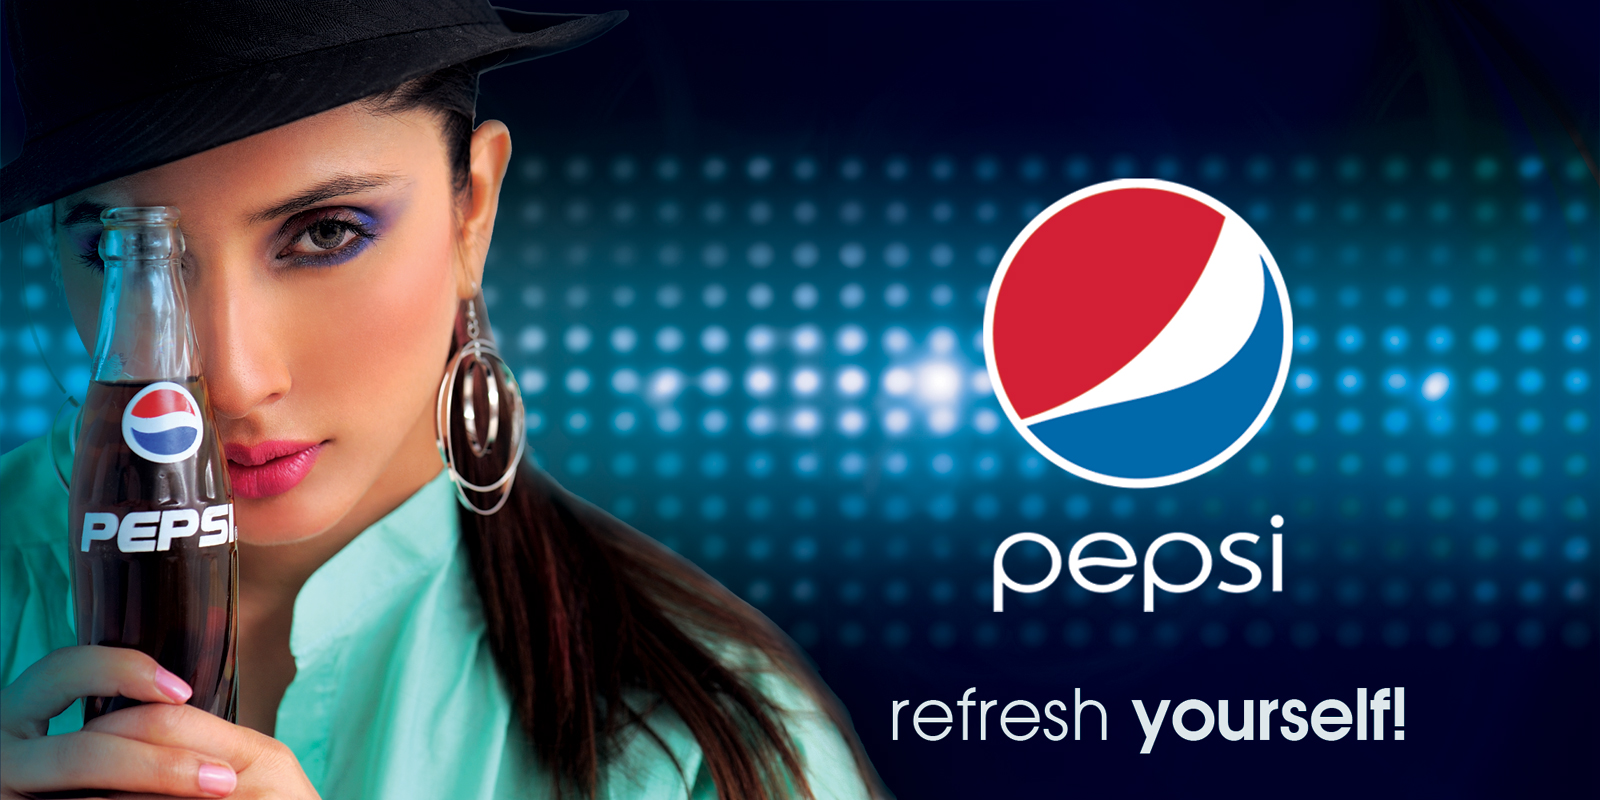 pepsi Job Application Form In Dubai on free generic, part time, blank generic,